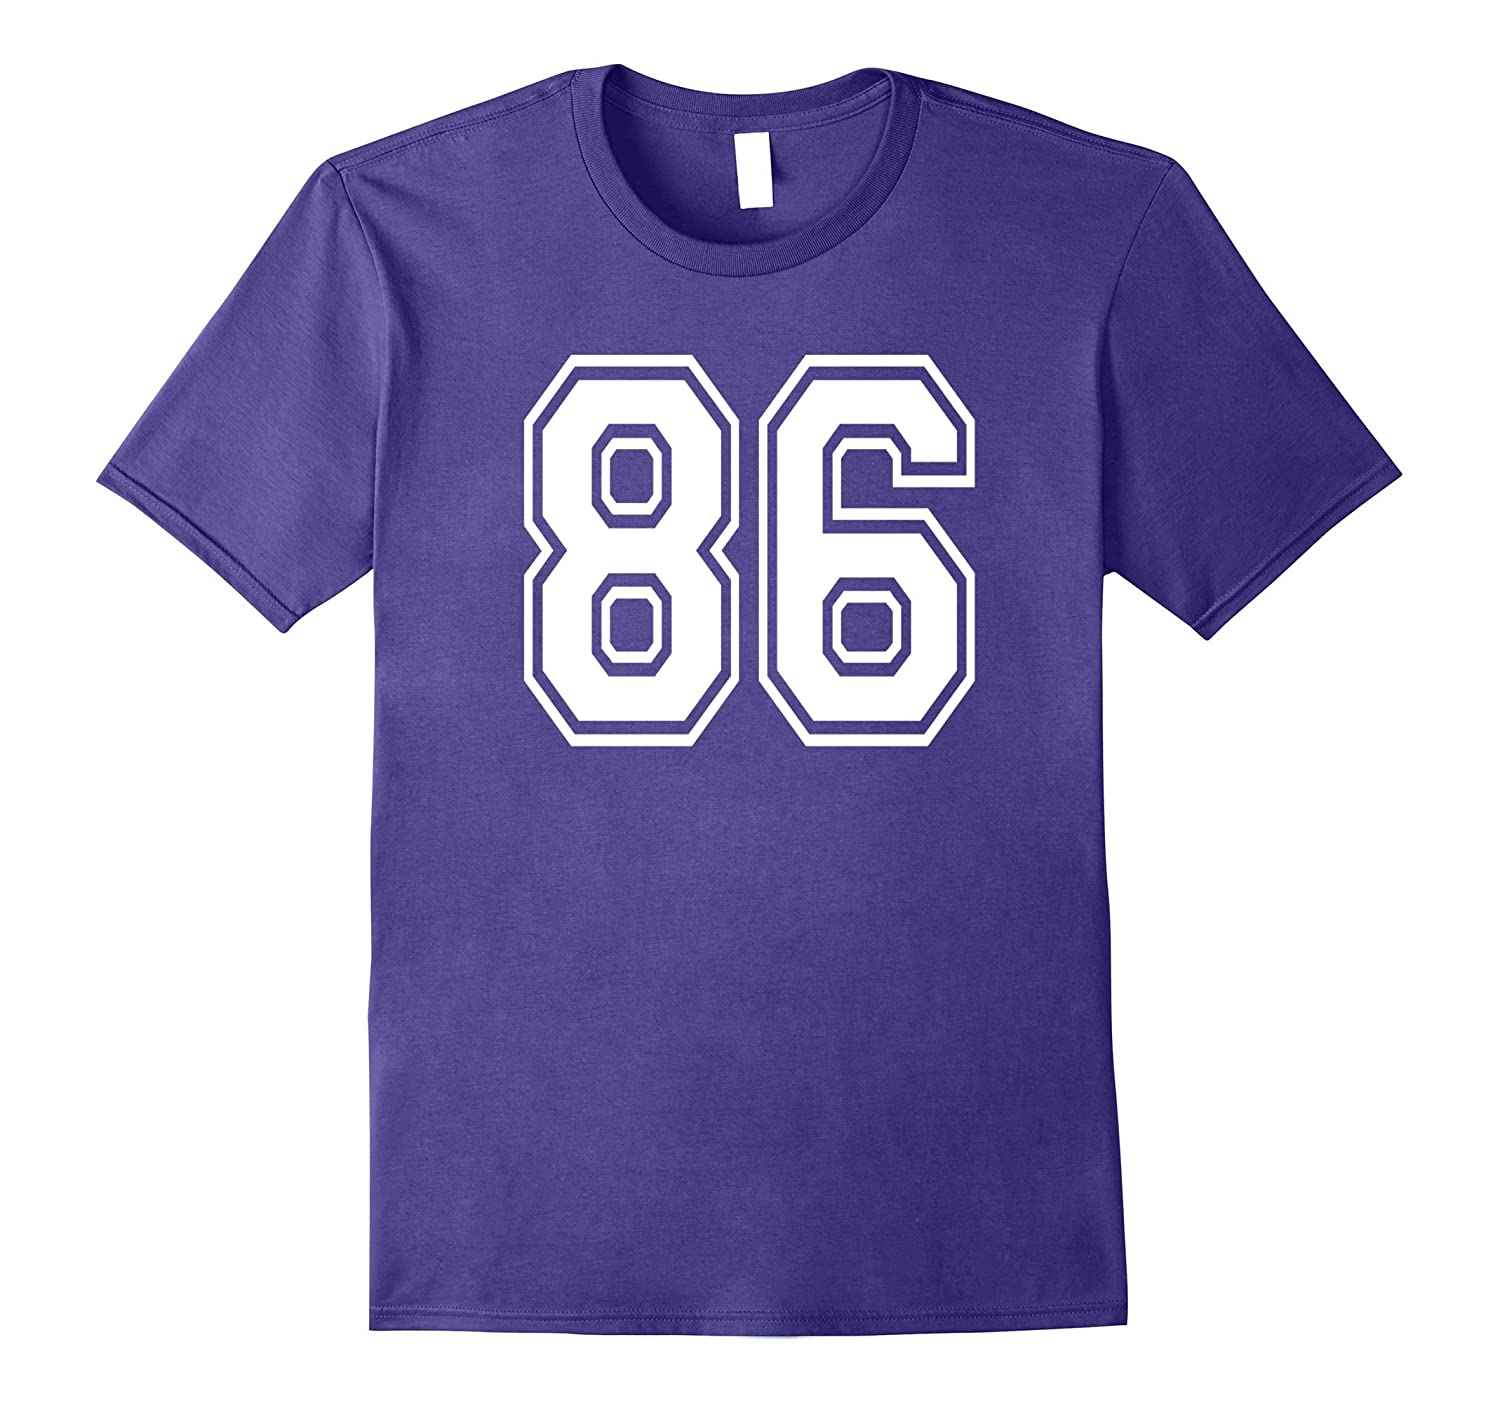 86 Sports Team School Numbers on Front T-Shirt Jersey-Vaci